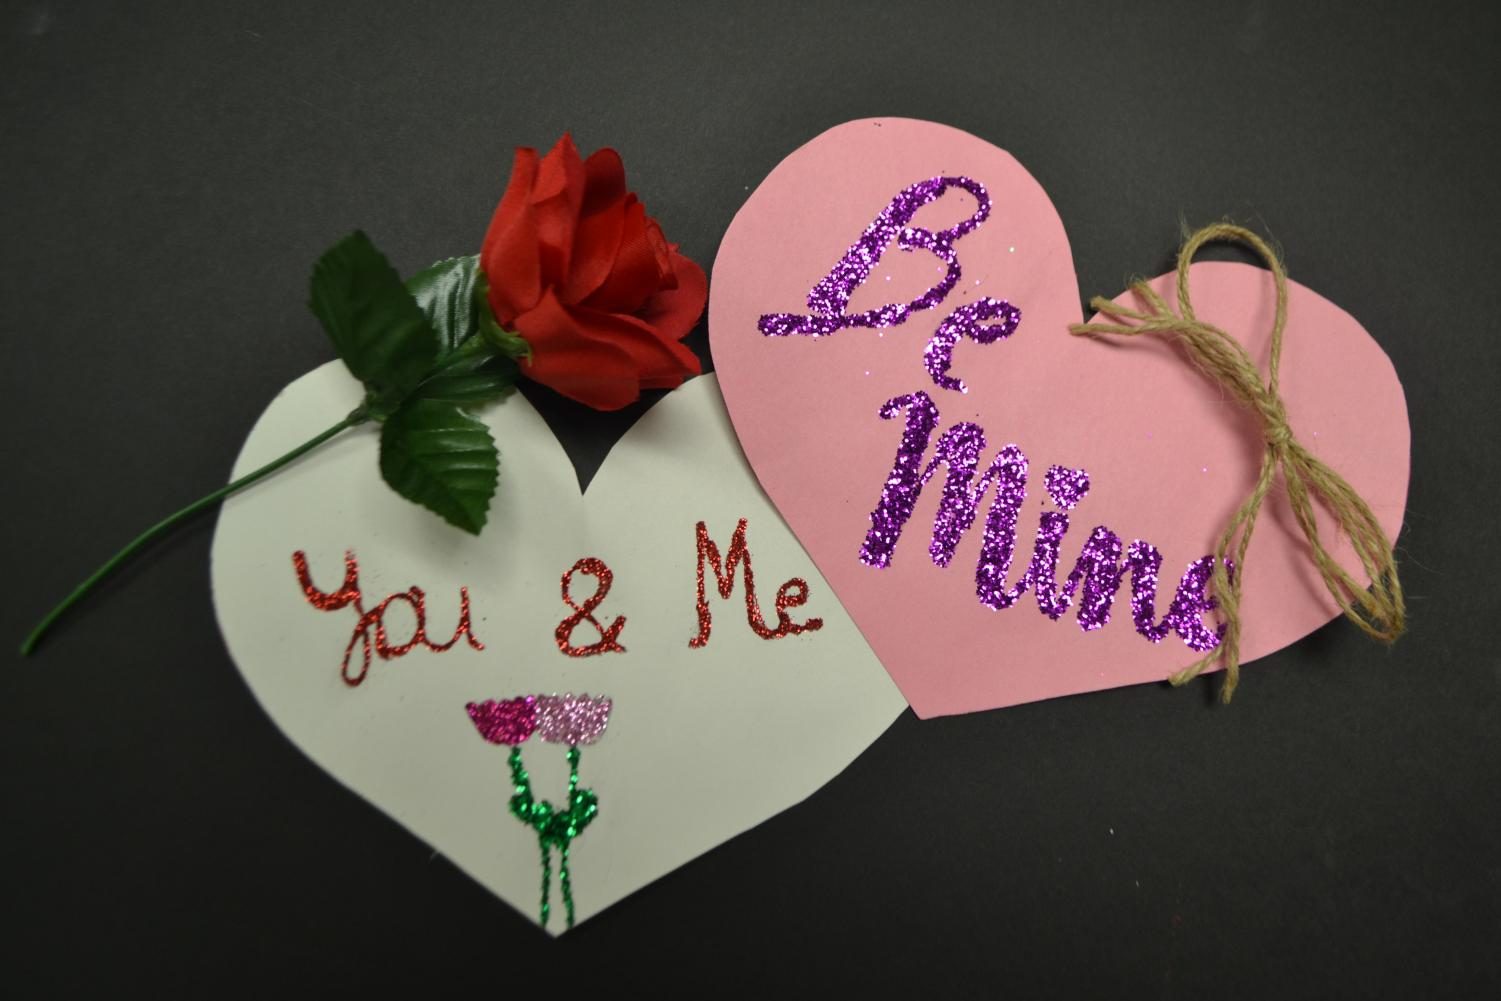 Homemade valentine's can make a wonderful and long lasting gift.